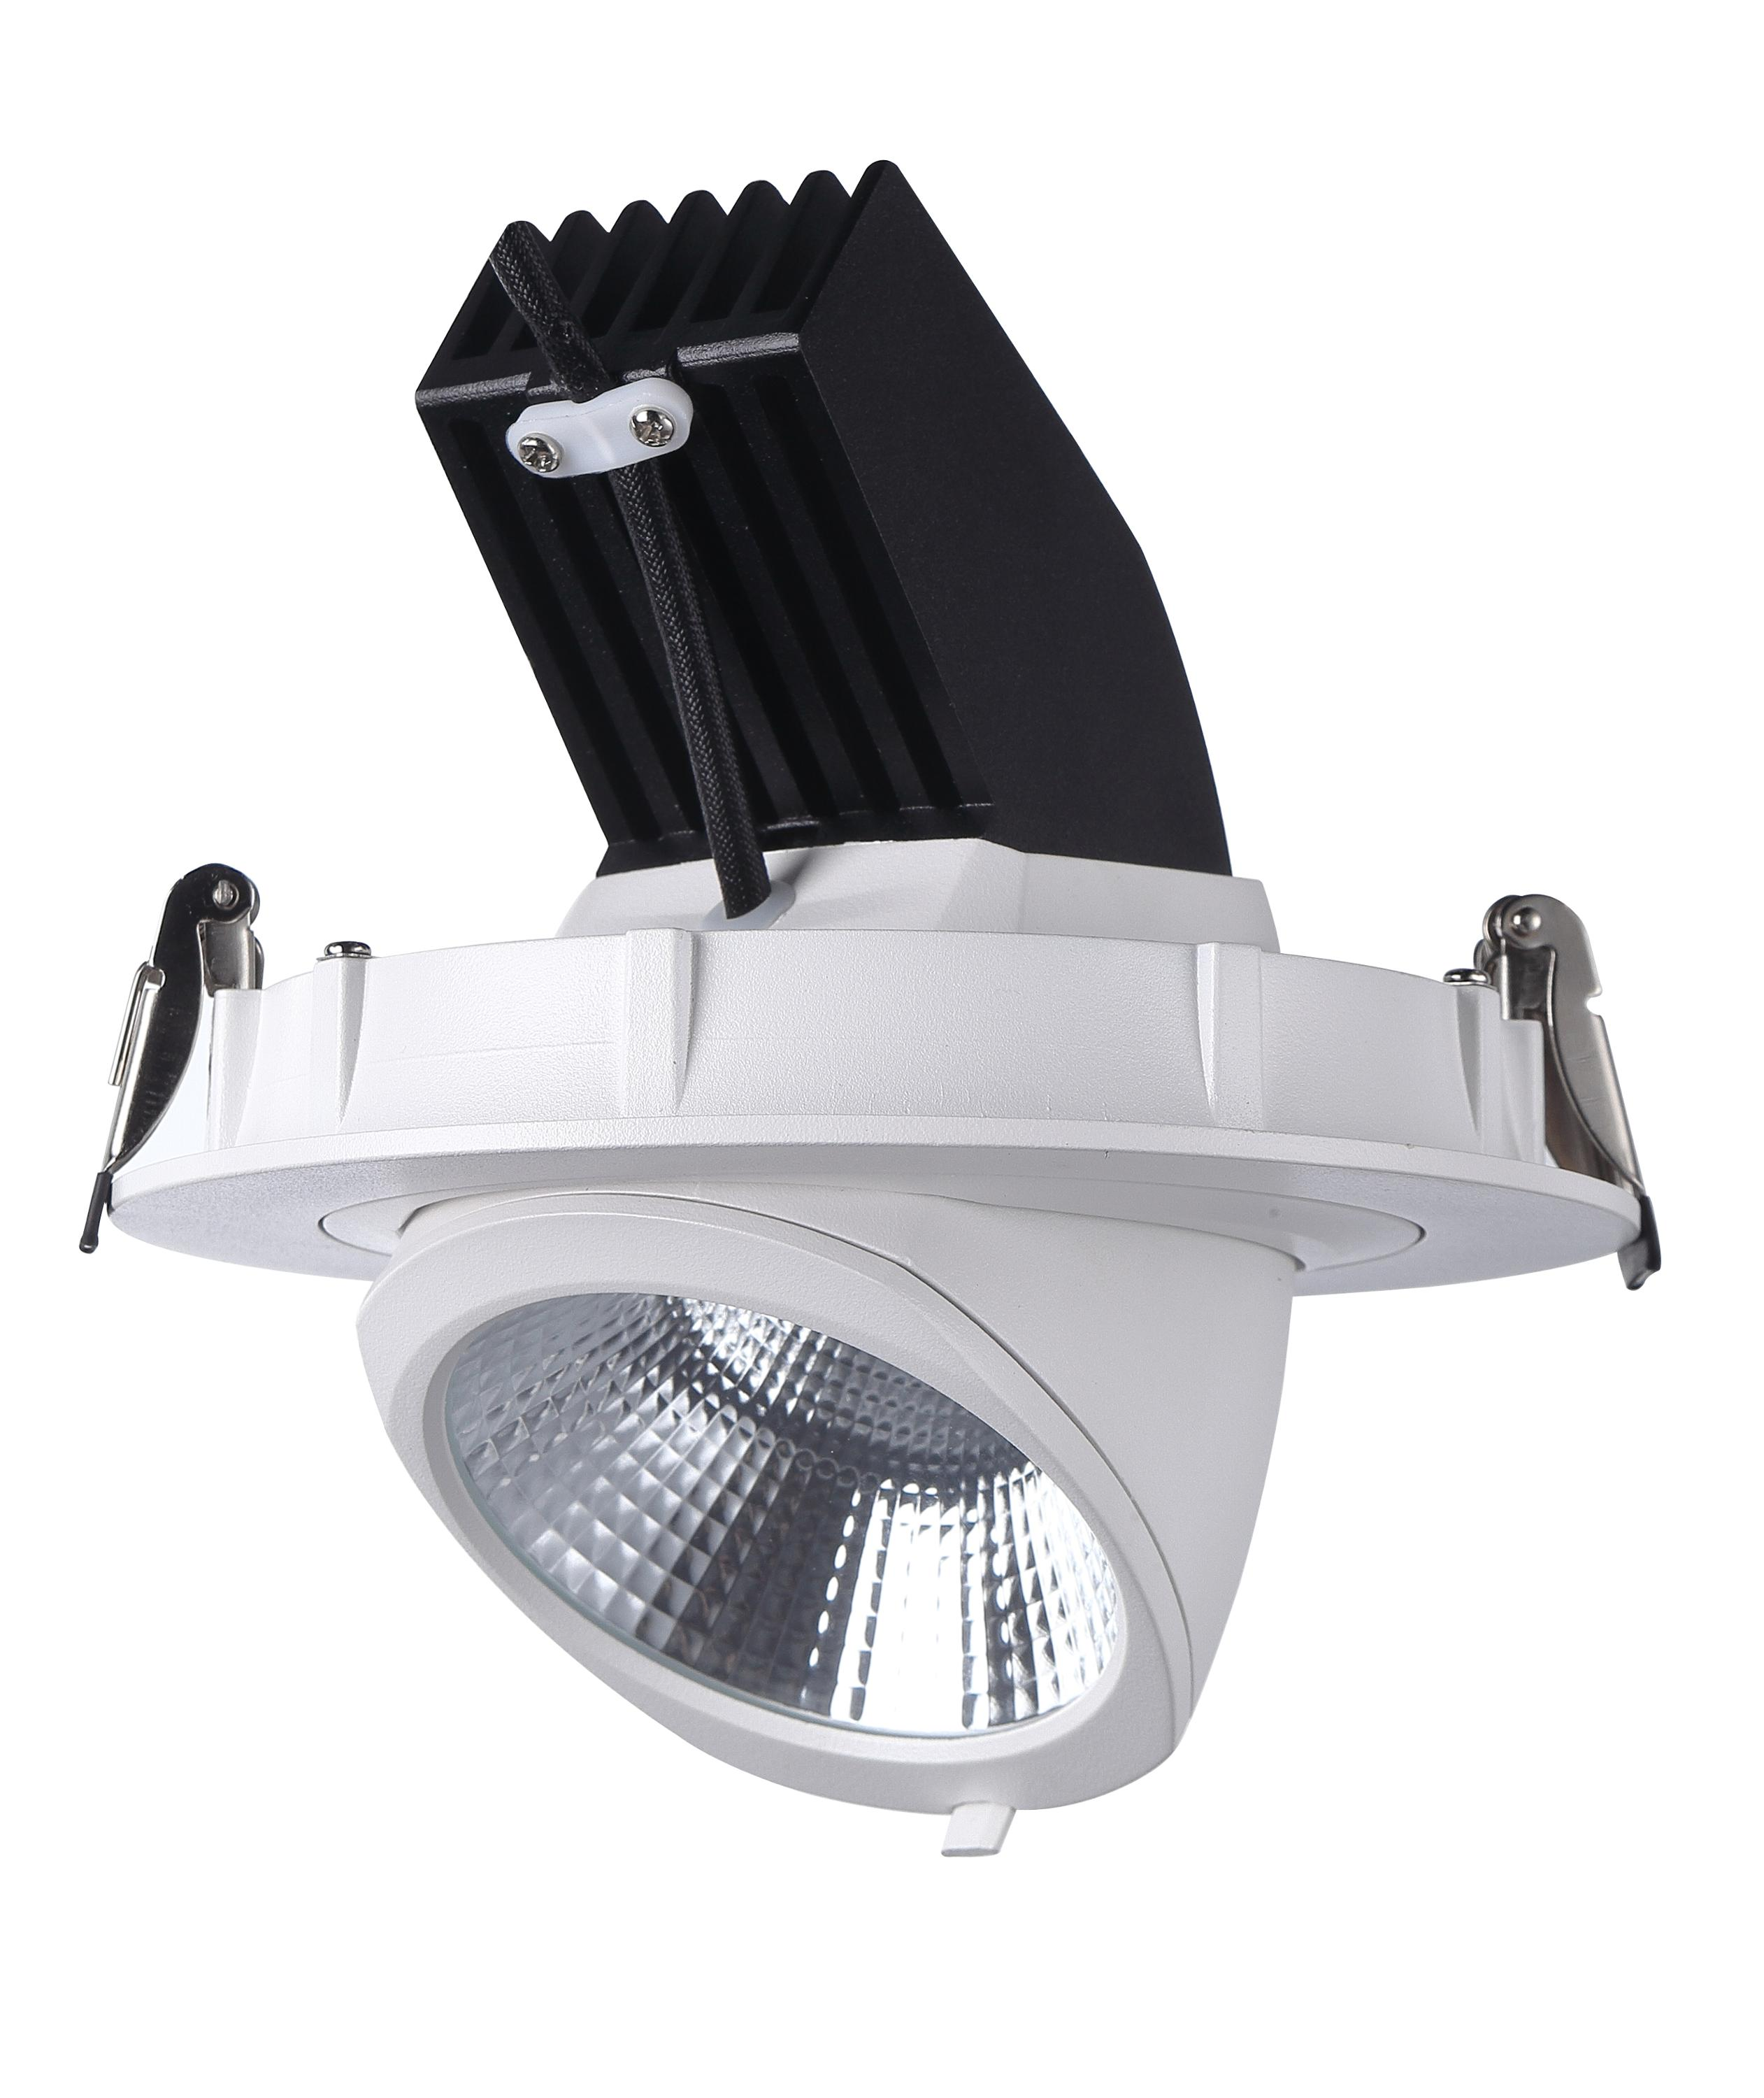 EU standard gimbal dimmable led ceiling spot light,recessed cob commercial <strong>spotlight</strong>